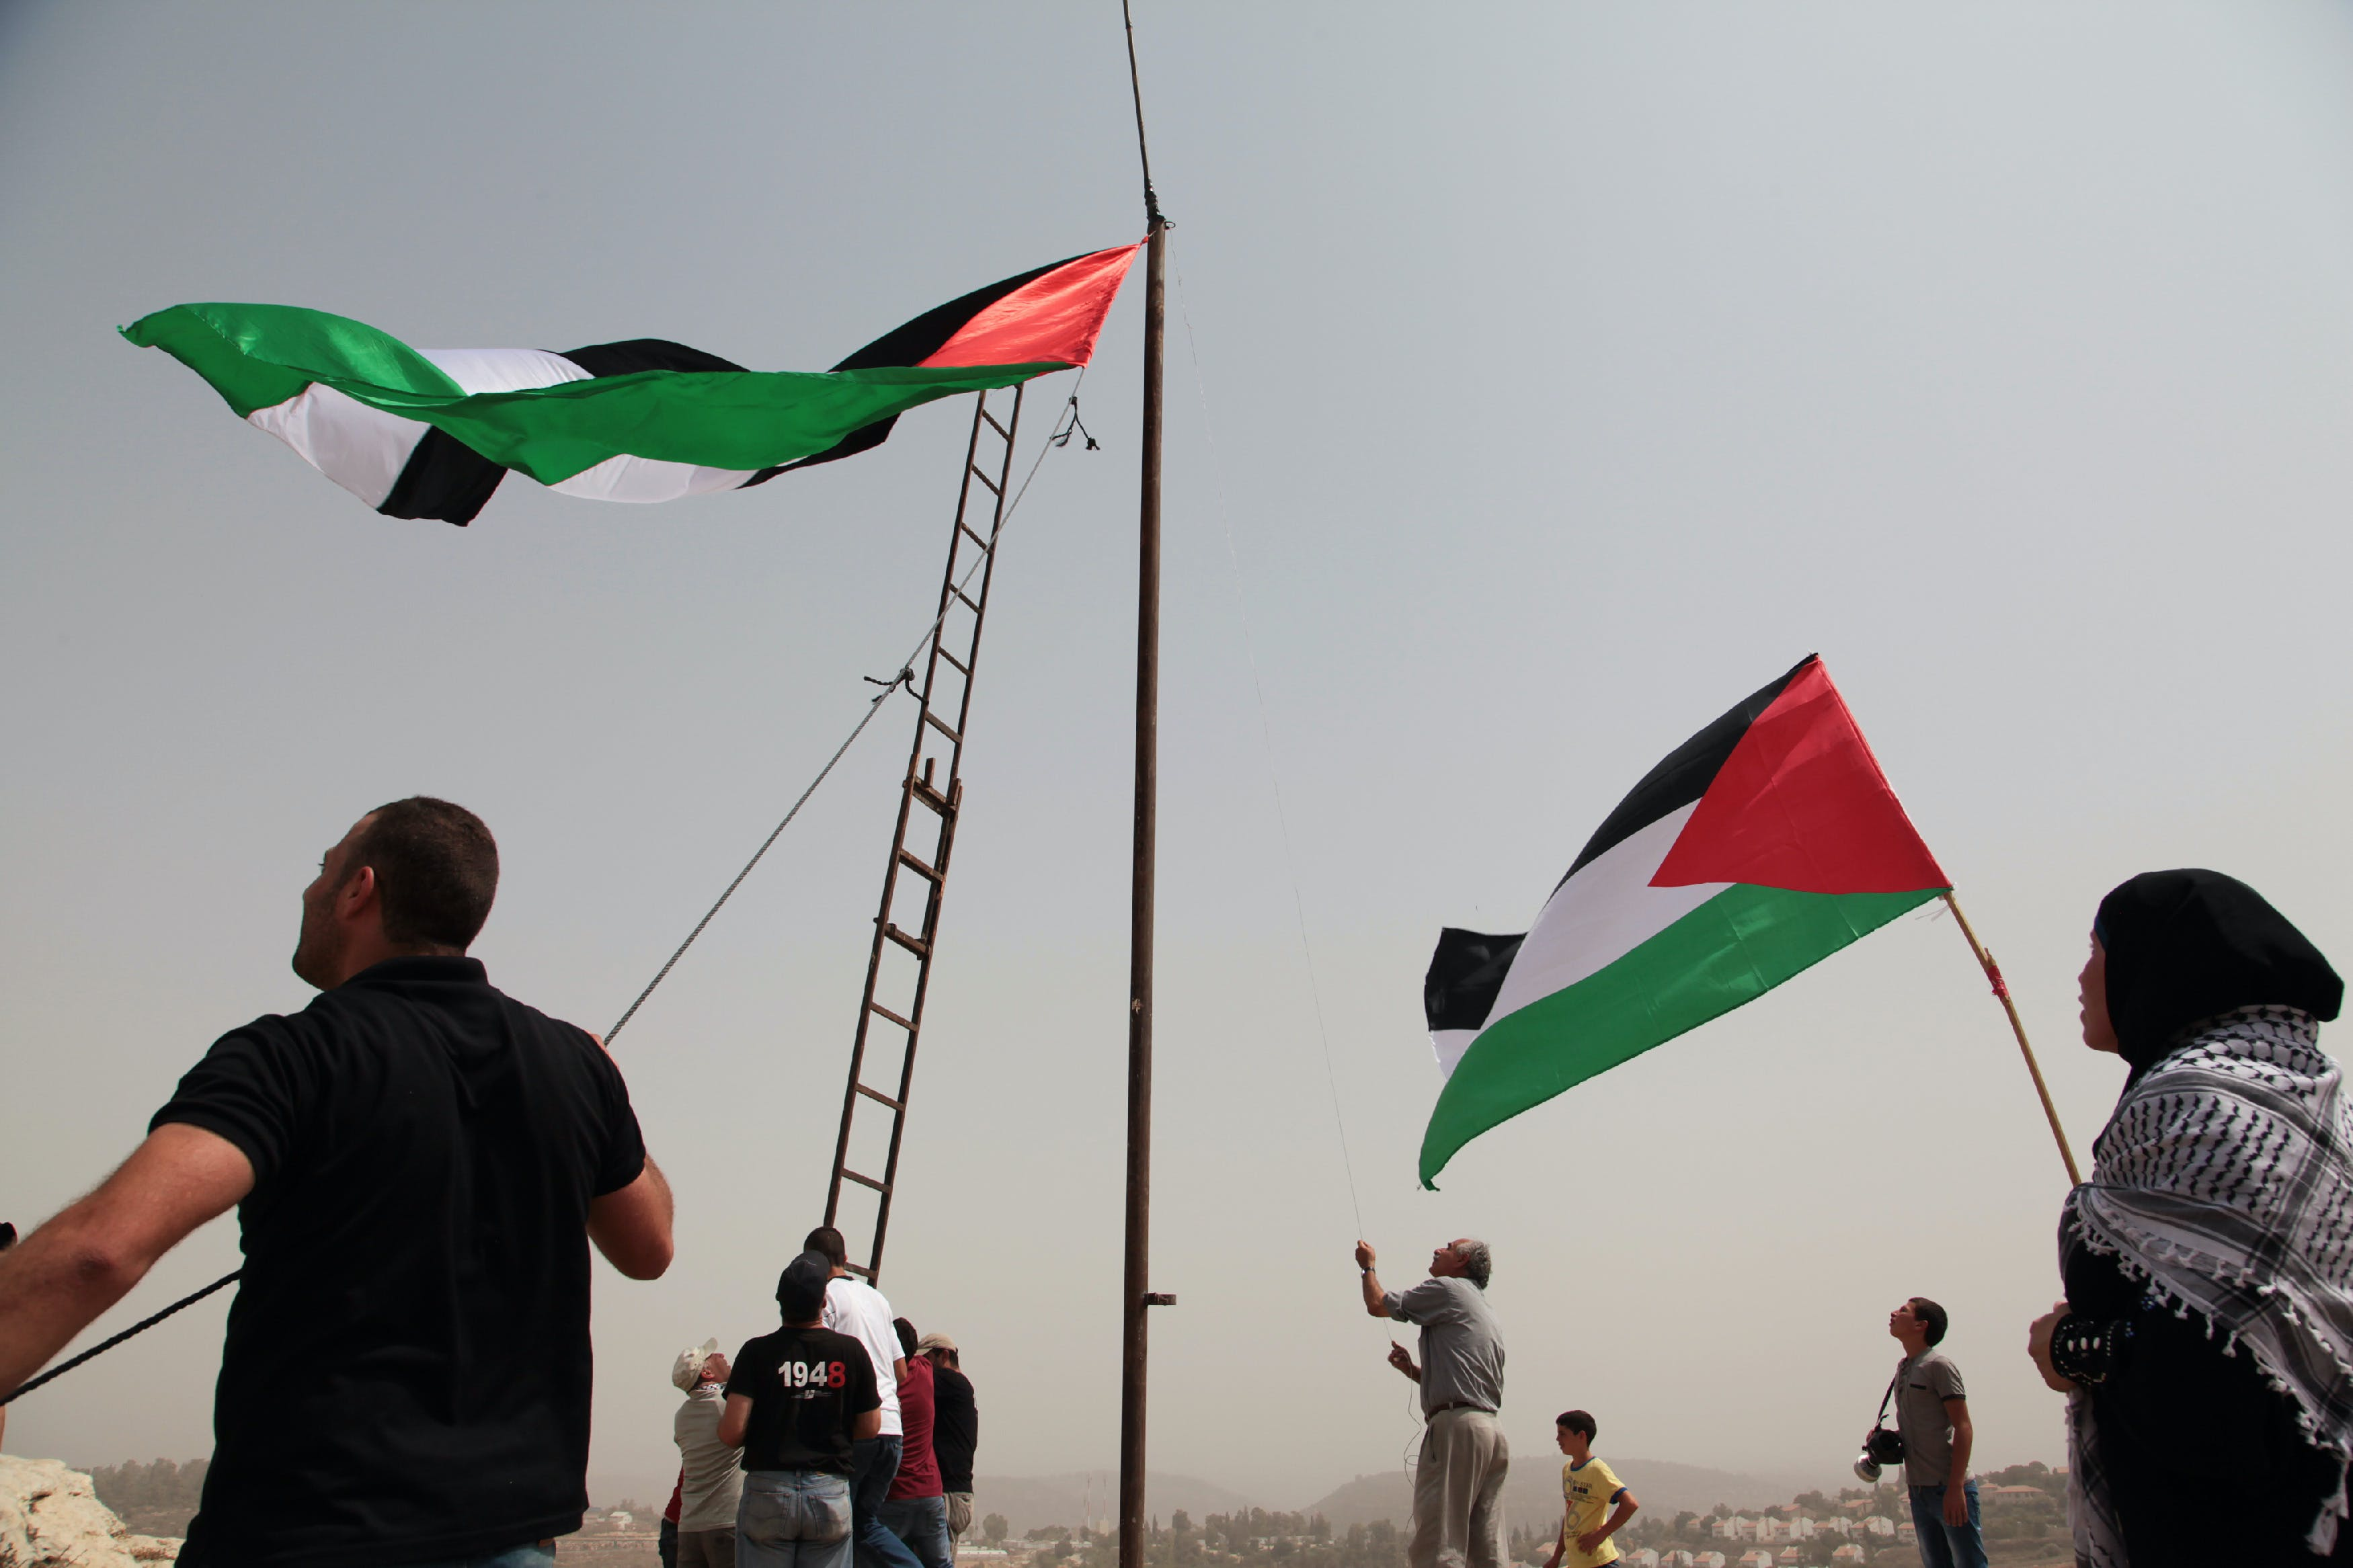 Palestinian protesters are raising a huge Palestine flag on flagpole in An Nabi Saleh on Sep 11, 2015. (Photo by Mohammad Alhaj/NurPhoto) (Photo by NurPhoto/NurPhoto via Getty Images)